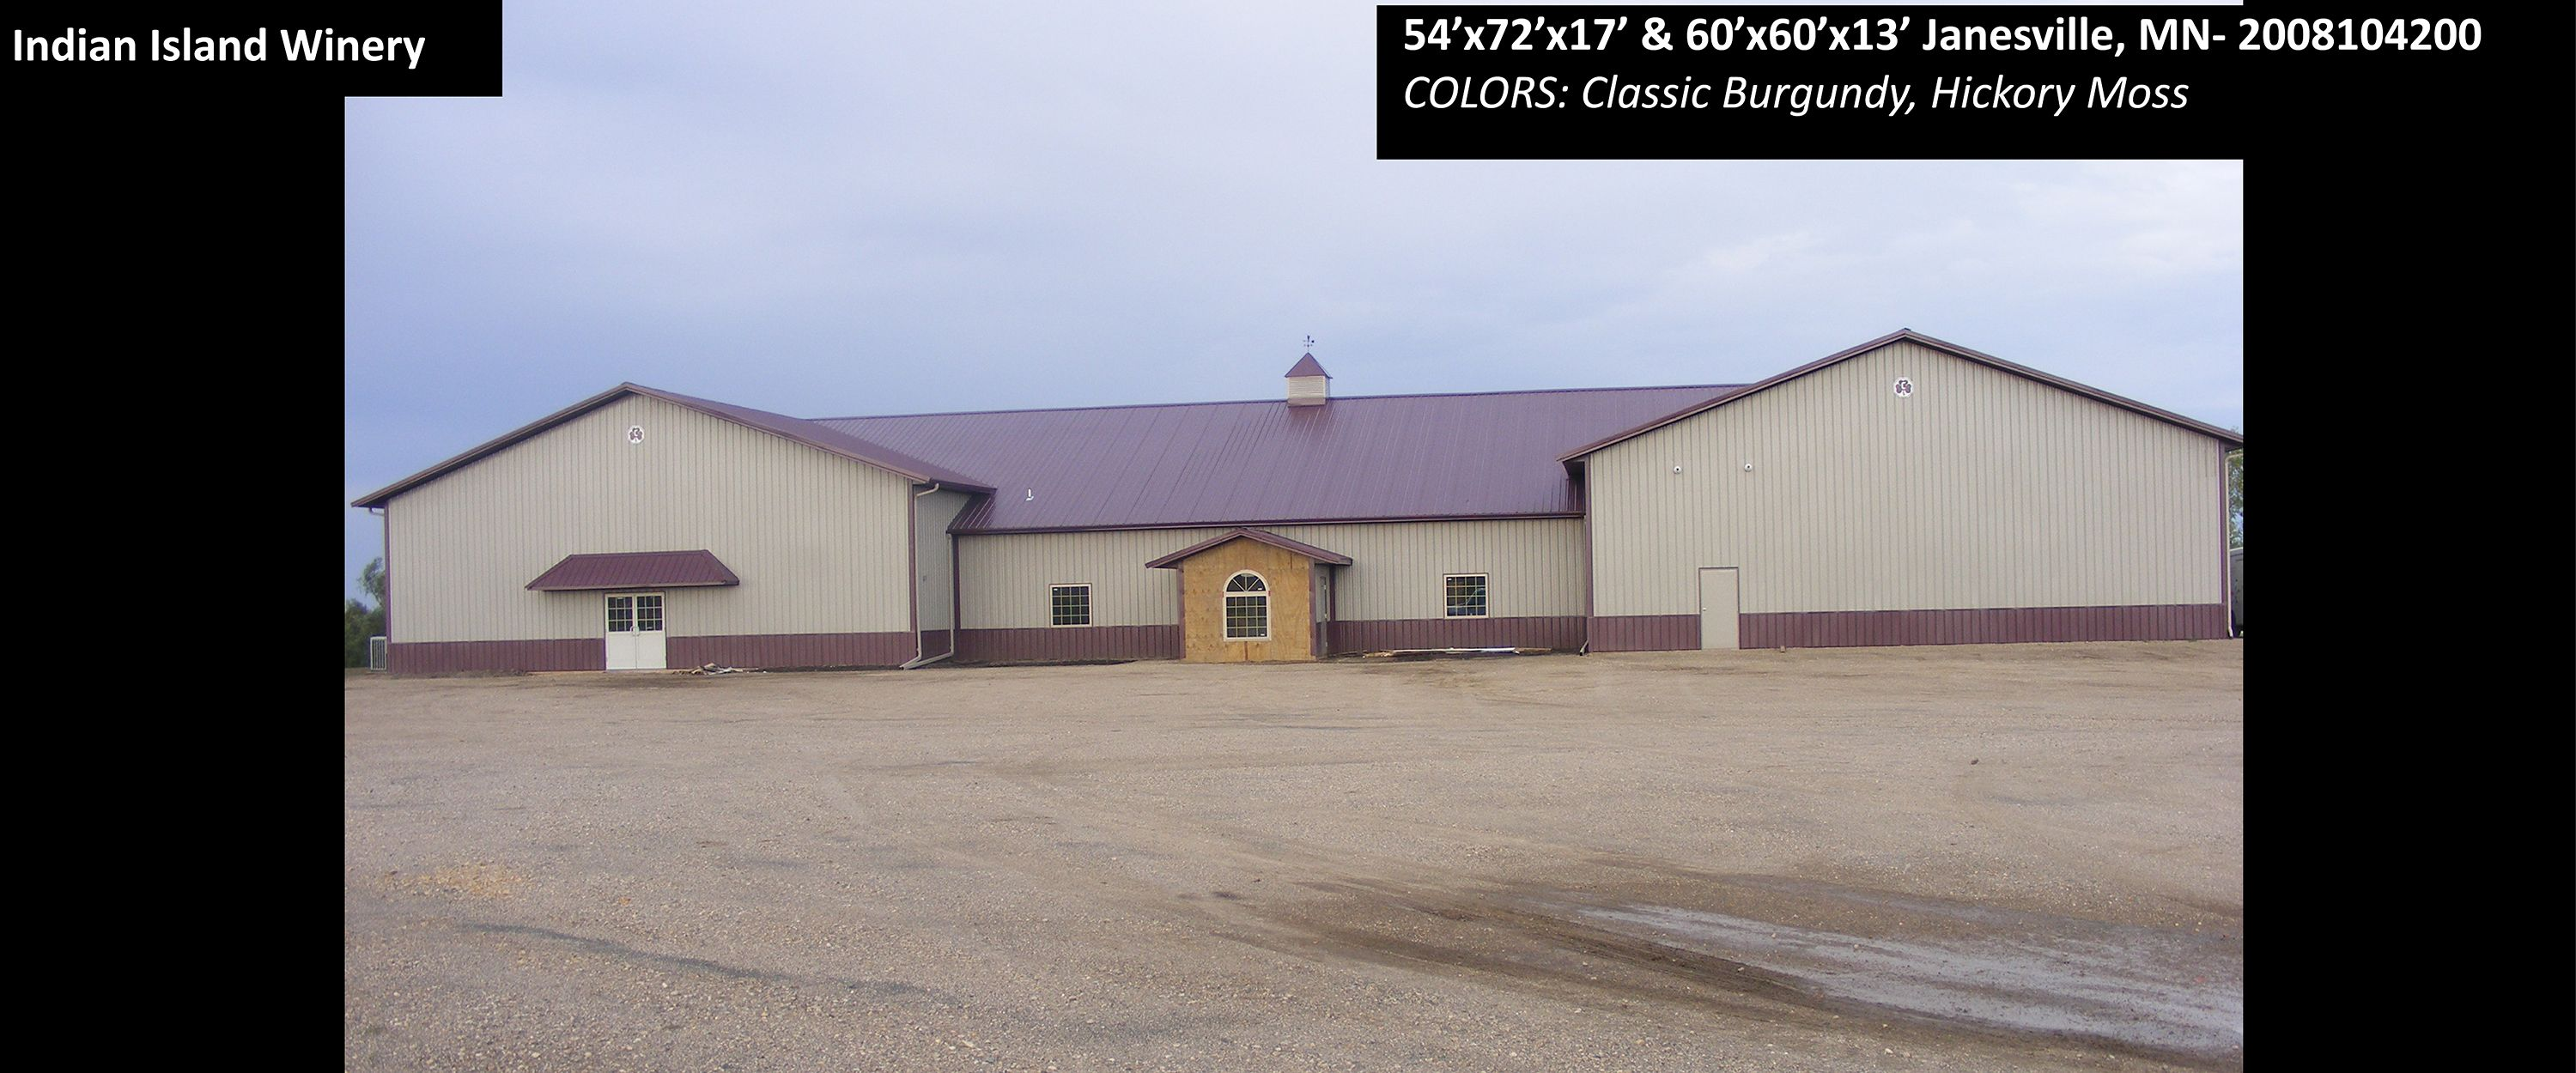 Garage Builders Janesville Wi 54 X72 X17 Cleary Winery Building In Janesville Mn Colors